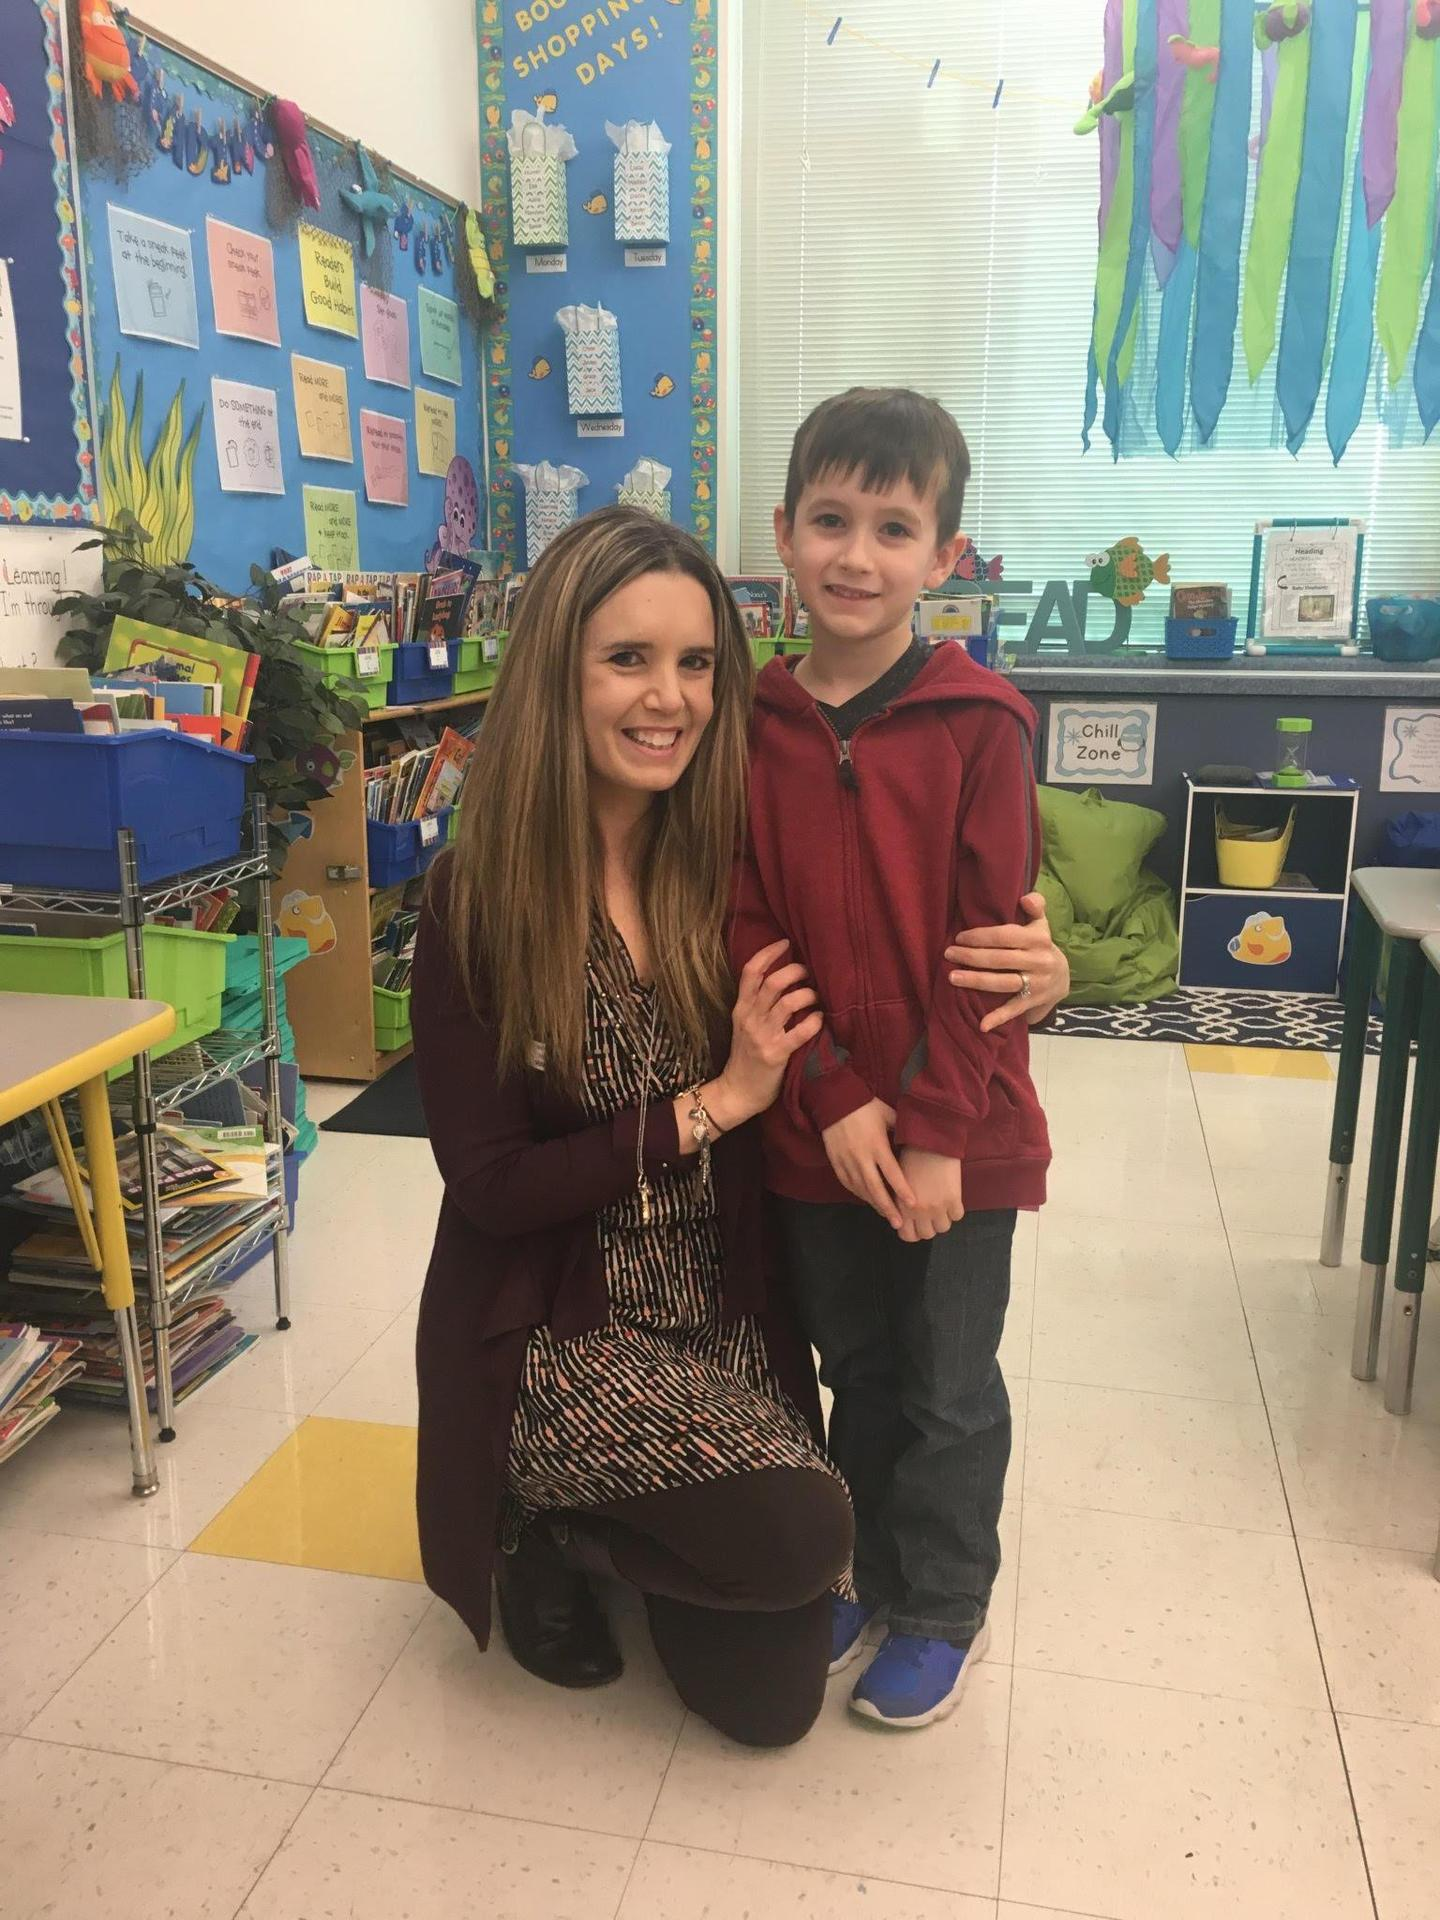 Mrs. Forcucci and Lucas, her son